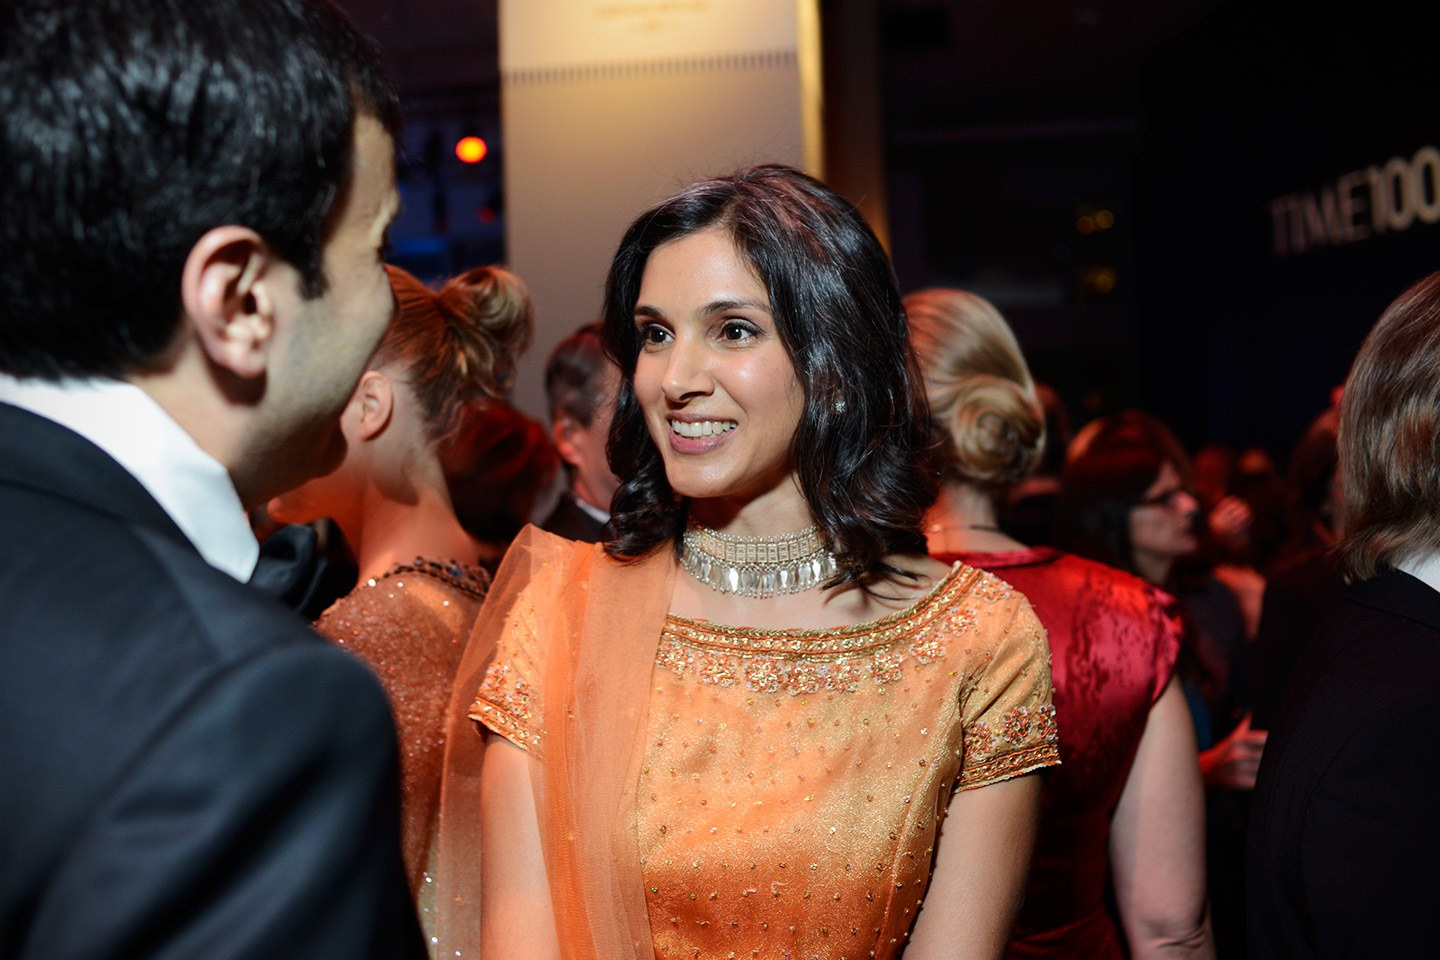 "Radhika Jones at the Time 100 Gala in New York, April 23, 2013. By Casey Kelbaugh/The New York Times/Redux. On Monday afternoon, shortly after The New York Times broke the news of her appointment as the next editor-in-chief of Vanity Fair, Radhika Jones visited the editorial and sales staff of V.F. at its headquarters on the 41st floor of One World Trade Center. Jones was accompanied by Condé Nast C.E.O. Robert A. Sauerberg; Vogue editor-in-chief and Condé Nast artistic director Anna Wintour; and, of course, the man Jones succeeds, Graydon Carter, the legendary editor who has run V.F. since 1992 and announced in September that he would be stepping down at the end of the year. ""I truly feel honored to be entrusted with this role,"" Jones, who is 44, said to the assembled staff members, beside a wall emblazoned with the mantra ""Think Like a Start-Up."" Jones, a former high-ranking editor at Time and The Paris Review, spent the past year as the editorial director of the books department at The New York Times. She will begin her V.F. tenure on December 11. Shortly after addressing the troops, she sat down to talk with me. Vanity Fair: You met Graydon for the first time this morning. Did he give you any good advice? Jones: He said I'm gonna be very busy for at least a year or two, probably longer. It's fun to meet a legend on a Monday. Your name first surfaced in press reports a couple of weeks ago. When did your conversations with Condé Nast begin? It was mid-September. And at what point did it became clear to you that you wanted this job? It was appealing to me at first mention. Vanity Fair holds this very unique place in the culture. There's no title that compares. I've worked at a number of different places, and the more I thought about it, the more I thought that I could draw on different parts of my experience in a way that would be meaningful. But I always thought I was a long shot, so maybe that took a bit of the pressure off. I heard that you submitted an ambitious memo. Can you walk me through the broad contours of your pitch to Condé Nast? I think I should probably wait and just let it show. On paper, your background is very literary, academic even. What are your interests in Hollywood and society, some of Vanity Fair's strongest suits? I'm fascinated by celebrity culture. When I started at Time in 2008, I was the arts editor, and it felt like this moment where entertainment and celebrity were really starting to change. Reality TV was gaining momentum, and the ways that people watched TV and watched movies and read about them and participated in the voyeurism of celebrity life, all of those things seemed to be changing. It's the kind of thing you can look back on, years later, and think, wow, something fundamental shifted in the culture. I also happen to have read Tina Brown's Vanity Fair Diaries this summer, and found it interesting to think about how she positioned high and low culture, because they're so much more mixed now, and it's an interesting proposition for a magazine like Vanity Fair to sort that out. It feels right to me to be thinking about these things at this moment. It feels like our culture is calling for it. All magazine brands are facing intense pressures as they grapple with the shift away from being print-driven platforms. In terms of Vanity Fair's platforms, where do you see the most exciting opportunity? I think it has opportunity on every platform, but I think of significant interest to me, coming out of the gate, are the Web site and the events. They're both areas where Vanity Fair is already strong and it would be incredible to build on that. Having overseen the Time 100, which is a hugely influential events franchise, what are your ambitions for Vanity Fair's events business in particular? There are a lot of possibilities, but it's important to sit down and talk to everyone who's involved and figure out what the priorities should be. What are you favorite parts of Vanity Fair? What are stories or sections or areas of coverage that have most dazzled you? I'll say a nerdy one first: the Star Wars portfolios. I love photography in general, and I love spectacular portrait photography and photojournalism, and I think that's such a great strength of this magazine. Basically, what I'm saying is, everything. But I also love really deeply reported long-form narrative. And profiles. I'm a big believer in the ability to tell stories through people, and so for me, the profile is a way not just to get to know someone who's important, but to figure out something about the way we live now and what we care about. You were at the Times just short of a year. What did you learn there? It was an amazing year to be at the Times, and it did feel like a transformative year. I learned a lot about talent, and also about engaging with the reader and how important that is. I think we all know this, but what was really emphasized for me, in my year at the Times, was how a great publication can create a community around its content. I'm sure they were fighting to keep you. The Times is a hard place to leave. I will say that, for me, it was a wonderfully welcoming place, and I will miss it a lot. In the end, I felt that this opportunity was unique. What are you like as a media consumer? What do you read? What do you watch? Who do you follow on Instagram? I follow National Geographic so I can see all the animals, and also travel sites. I love travel magazines and food magazines, and I read New York and The New Yorker and other things with the words ""New York"" in them. I'm on Twitter, so I read the things that come to me from any number of places. Because I've been immersed in books in the past year, my reading has skewed toward books and book trades. I'm obsessed with The Americans, and I can't wait for the new season of The Crown. I aspire to watch more television. There's so much right now that you have to really make a commitment. I need to re-commit. What would be your biggest gets for Vanity Fair? Who do you want to see on the cover? I'm gonna make a private list and put it in a drawer and in a year, we can take it out and look at it. As someone who's relatively unknown compared to some of the other candidates who were being considered for this position, like Janice Min or Andrew Ross Sorkin, what's one thing you'd want people to know about you? That I'm an omnivore, culturally speaking, and story-wise too. I'm always ready to be interested in something. That's my default position. Radhika Jones at the Time 100 gala in New York in 2013 (Credit: Casey Kelbaugh/ New York Times/Redux)"